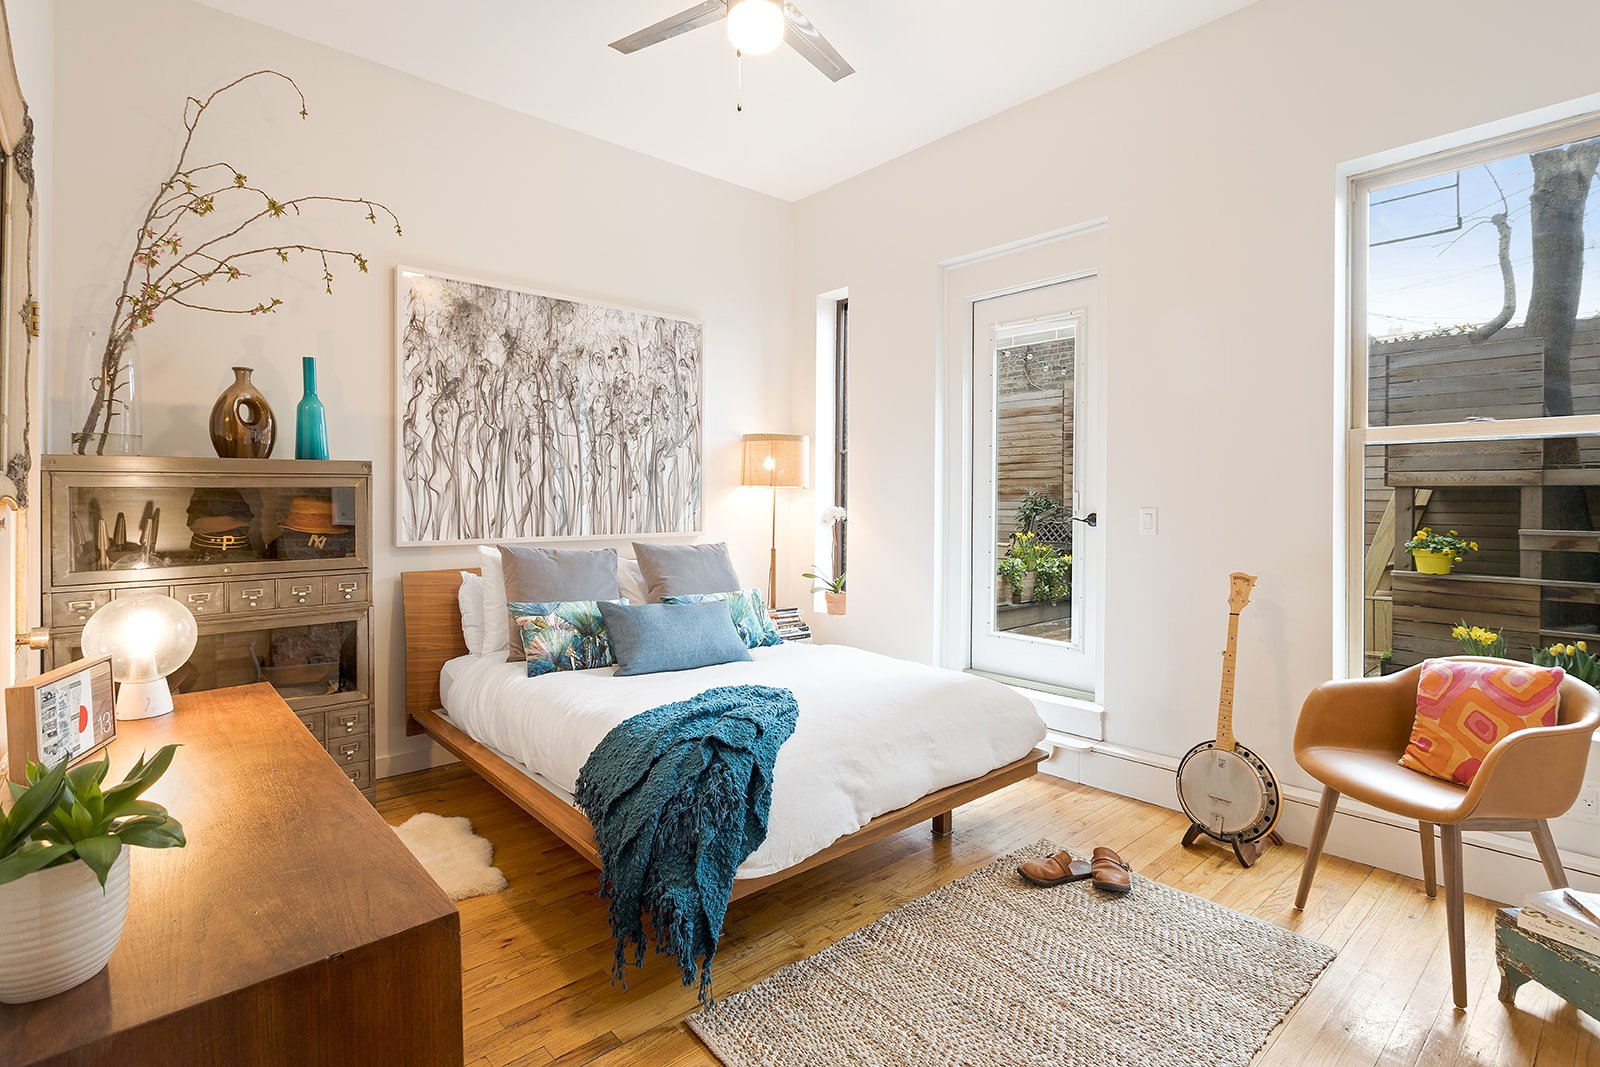 487 6th Avenue, cool listings, park slope, co-ops, duplexes, outside spaces